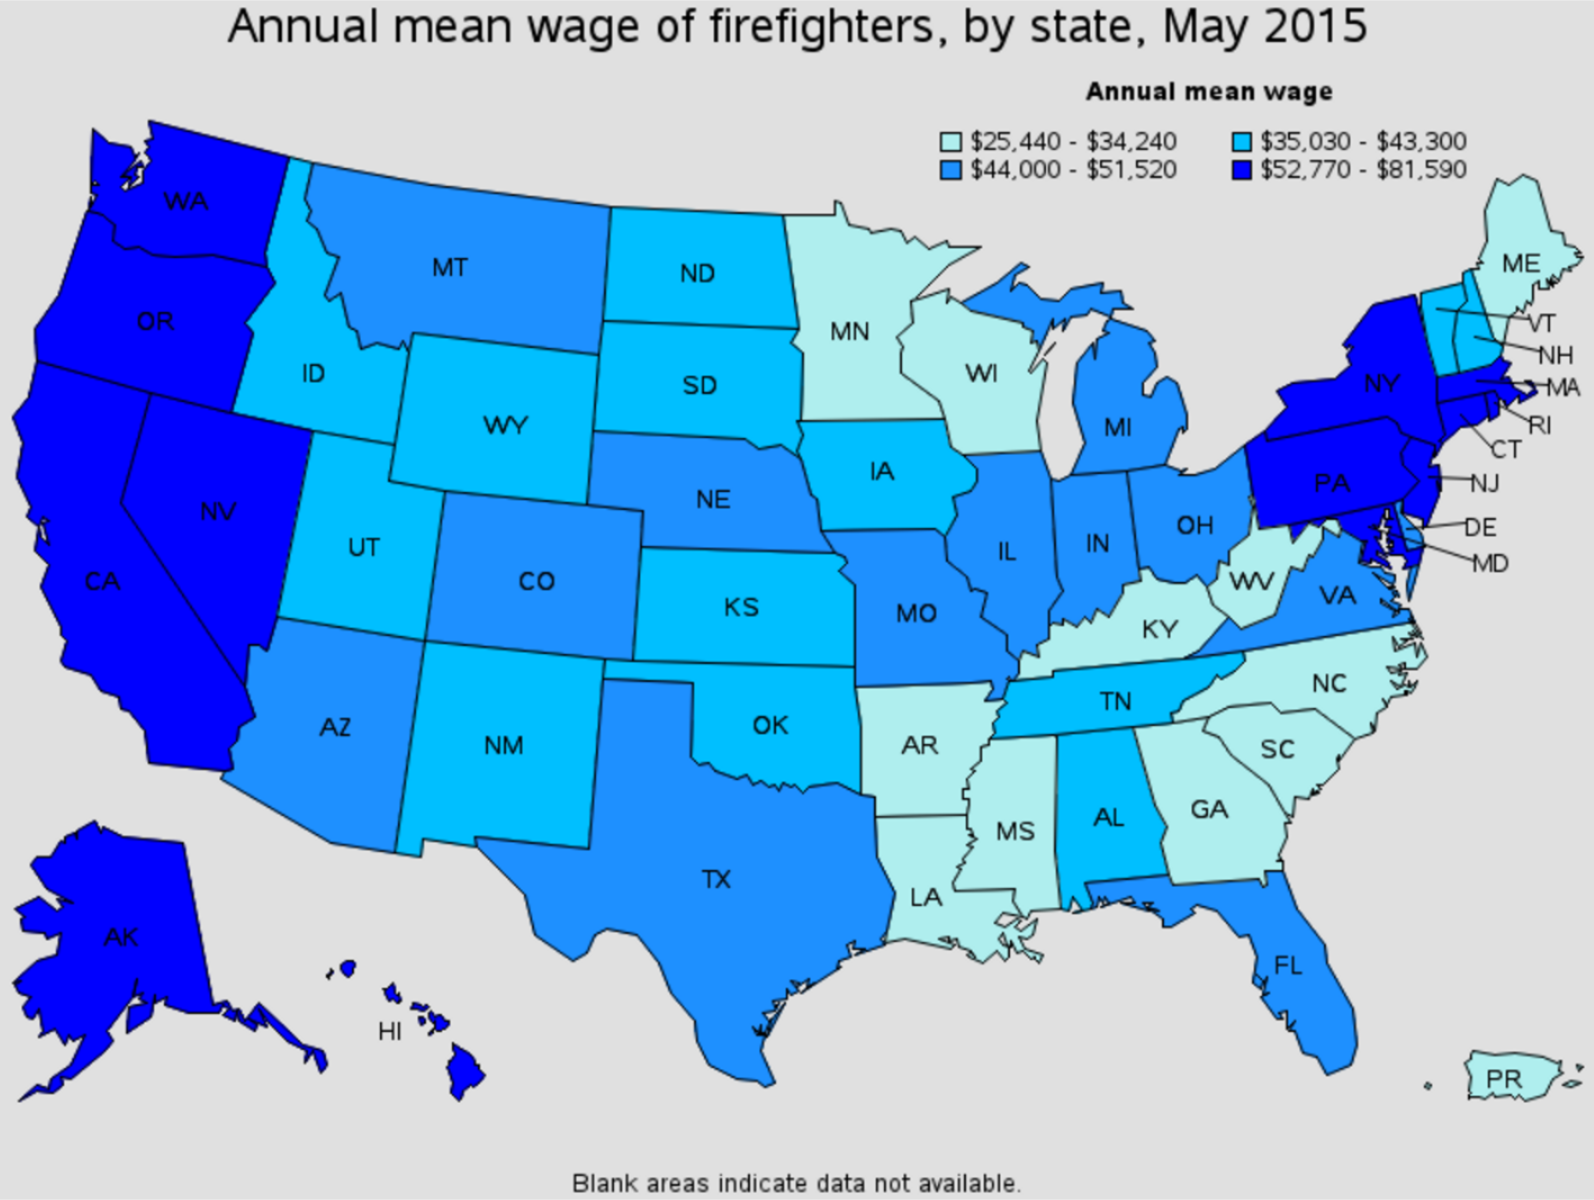 firefighter average salary by state Wilton North Dakota